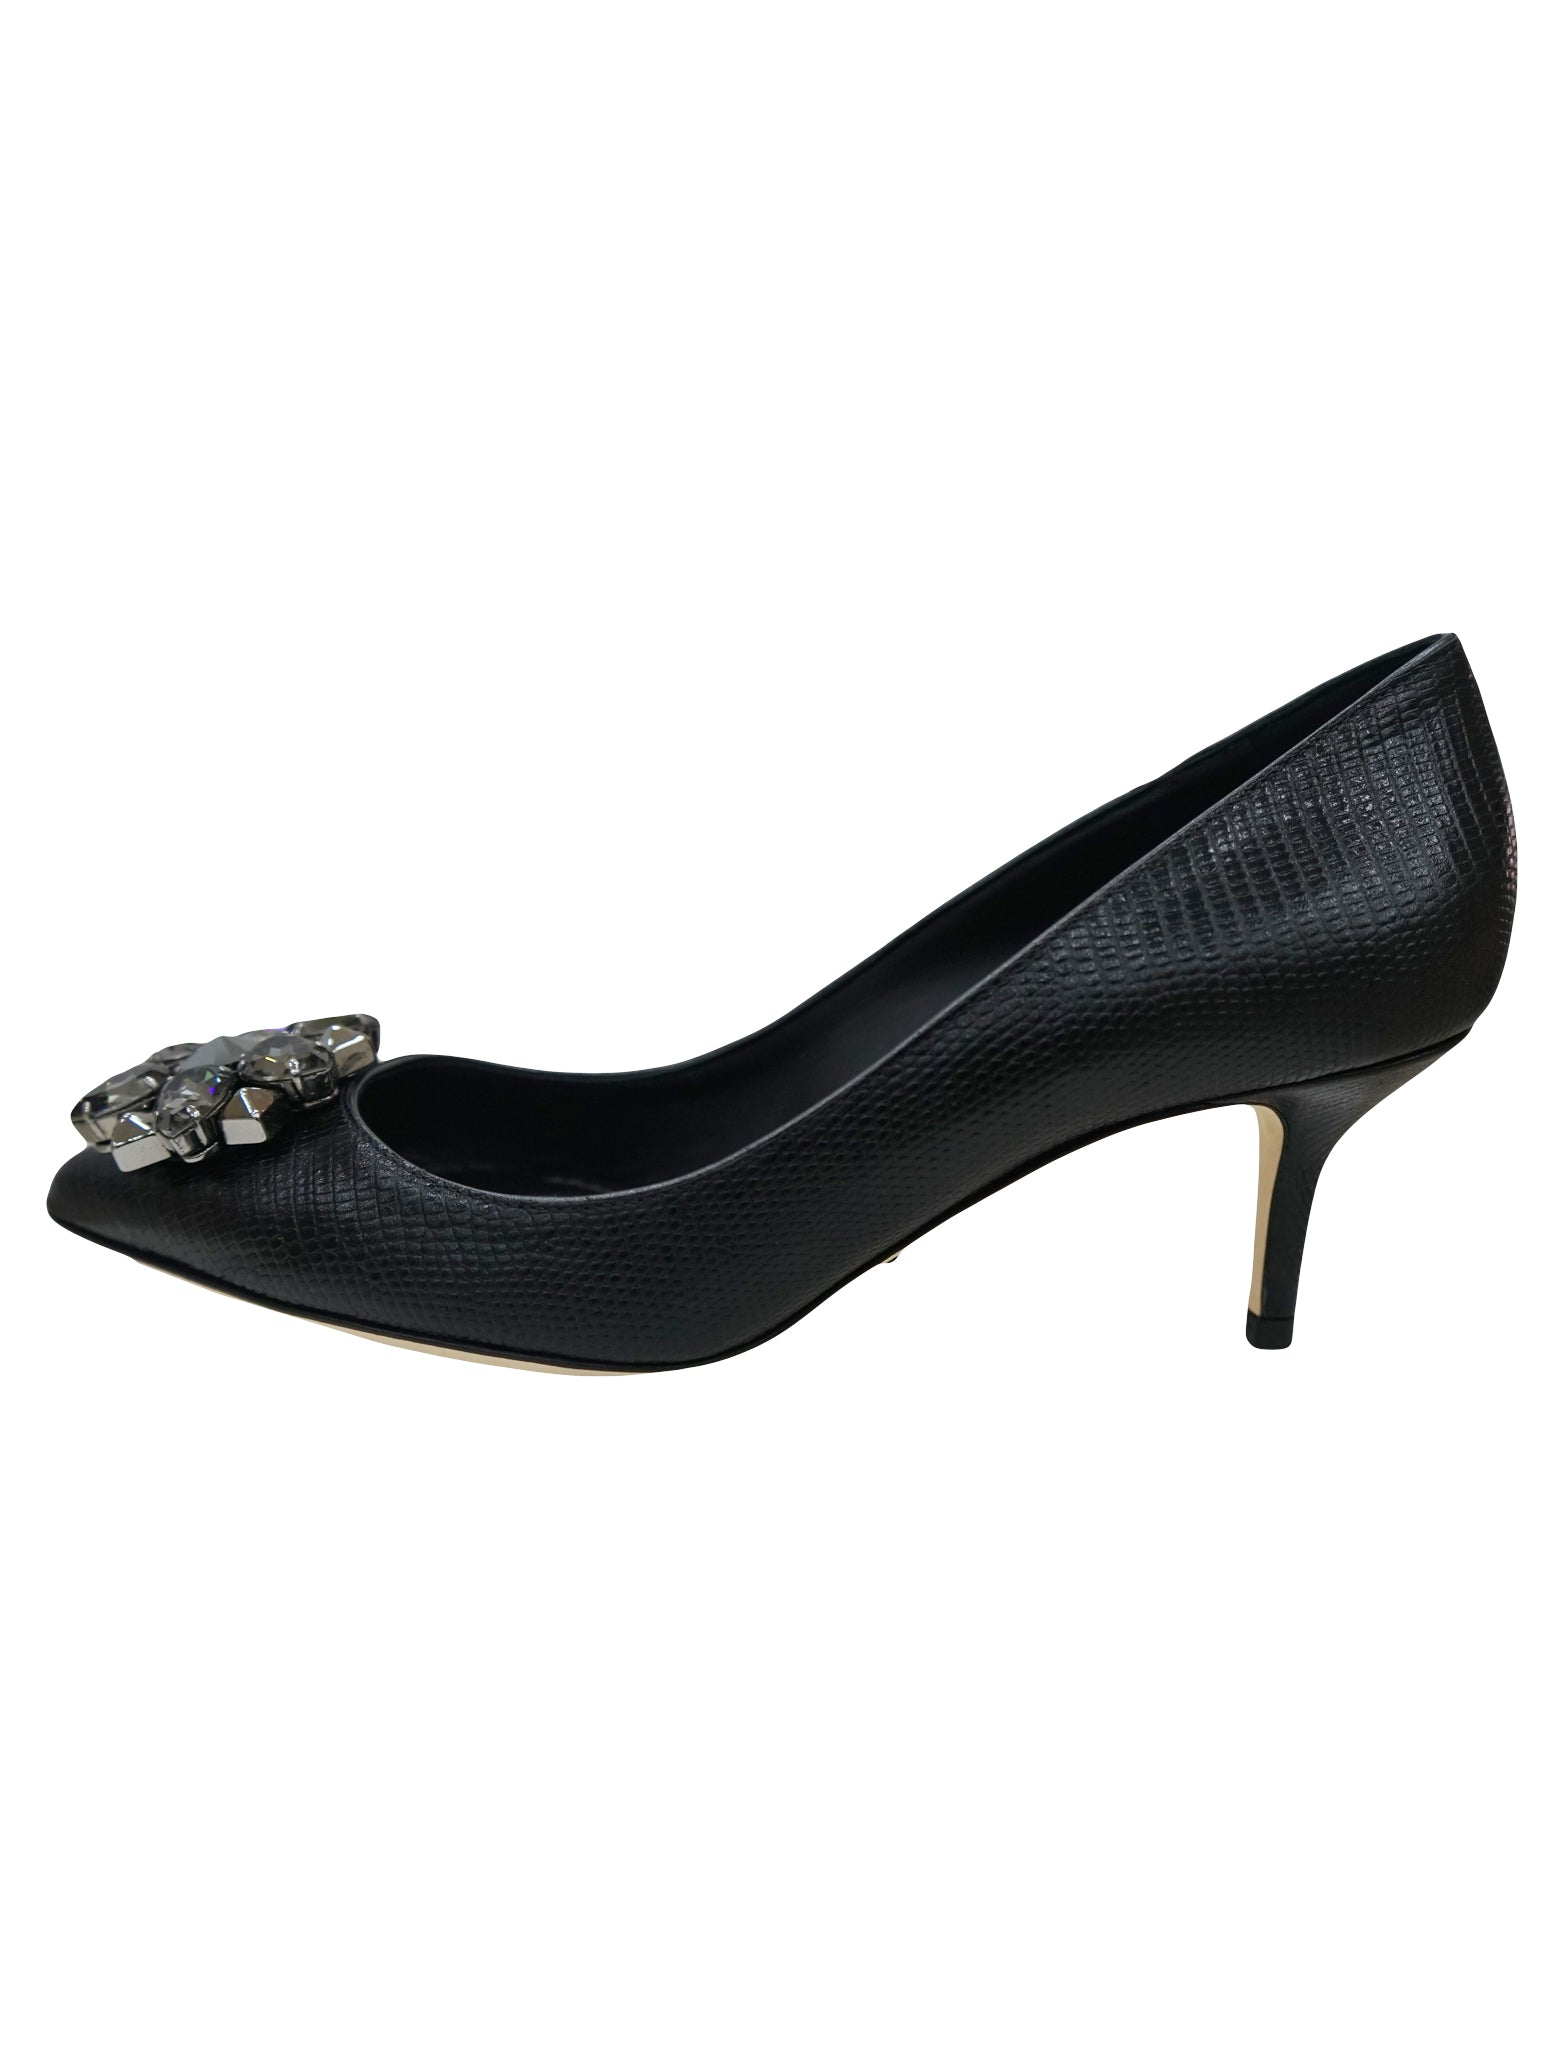 BLACK IGUANA PUMPS